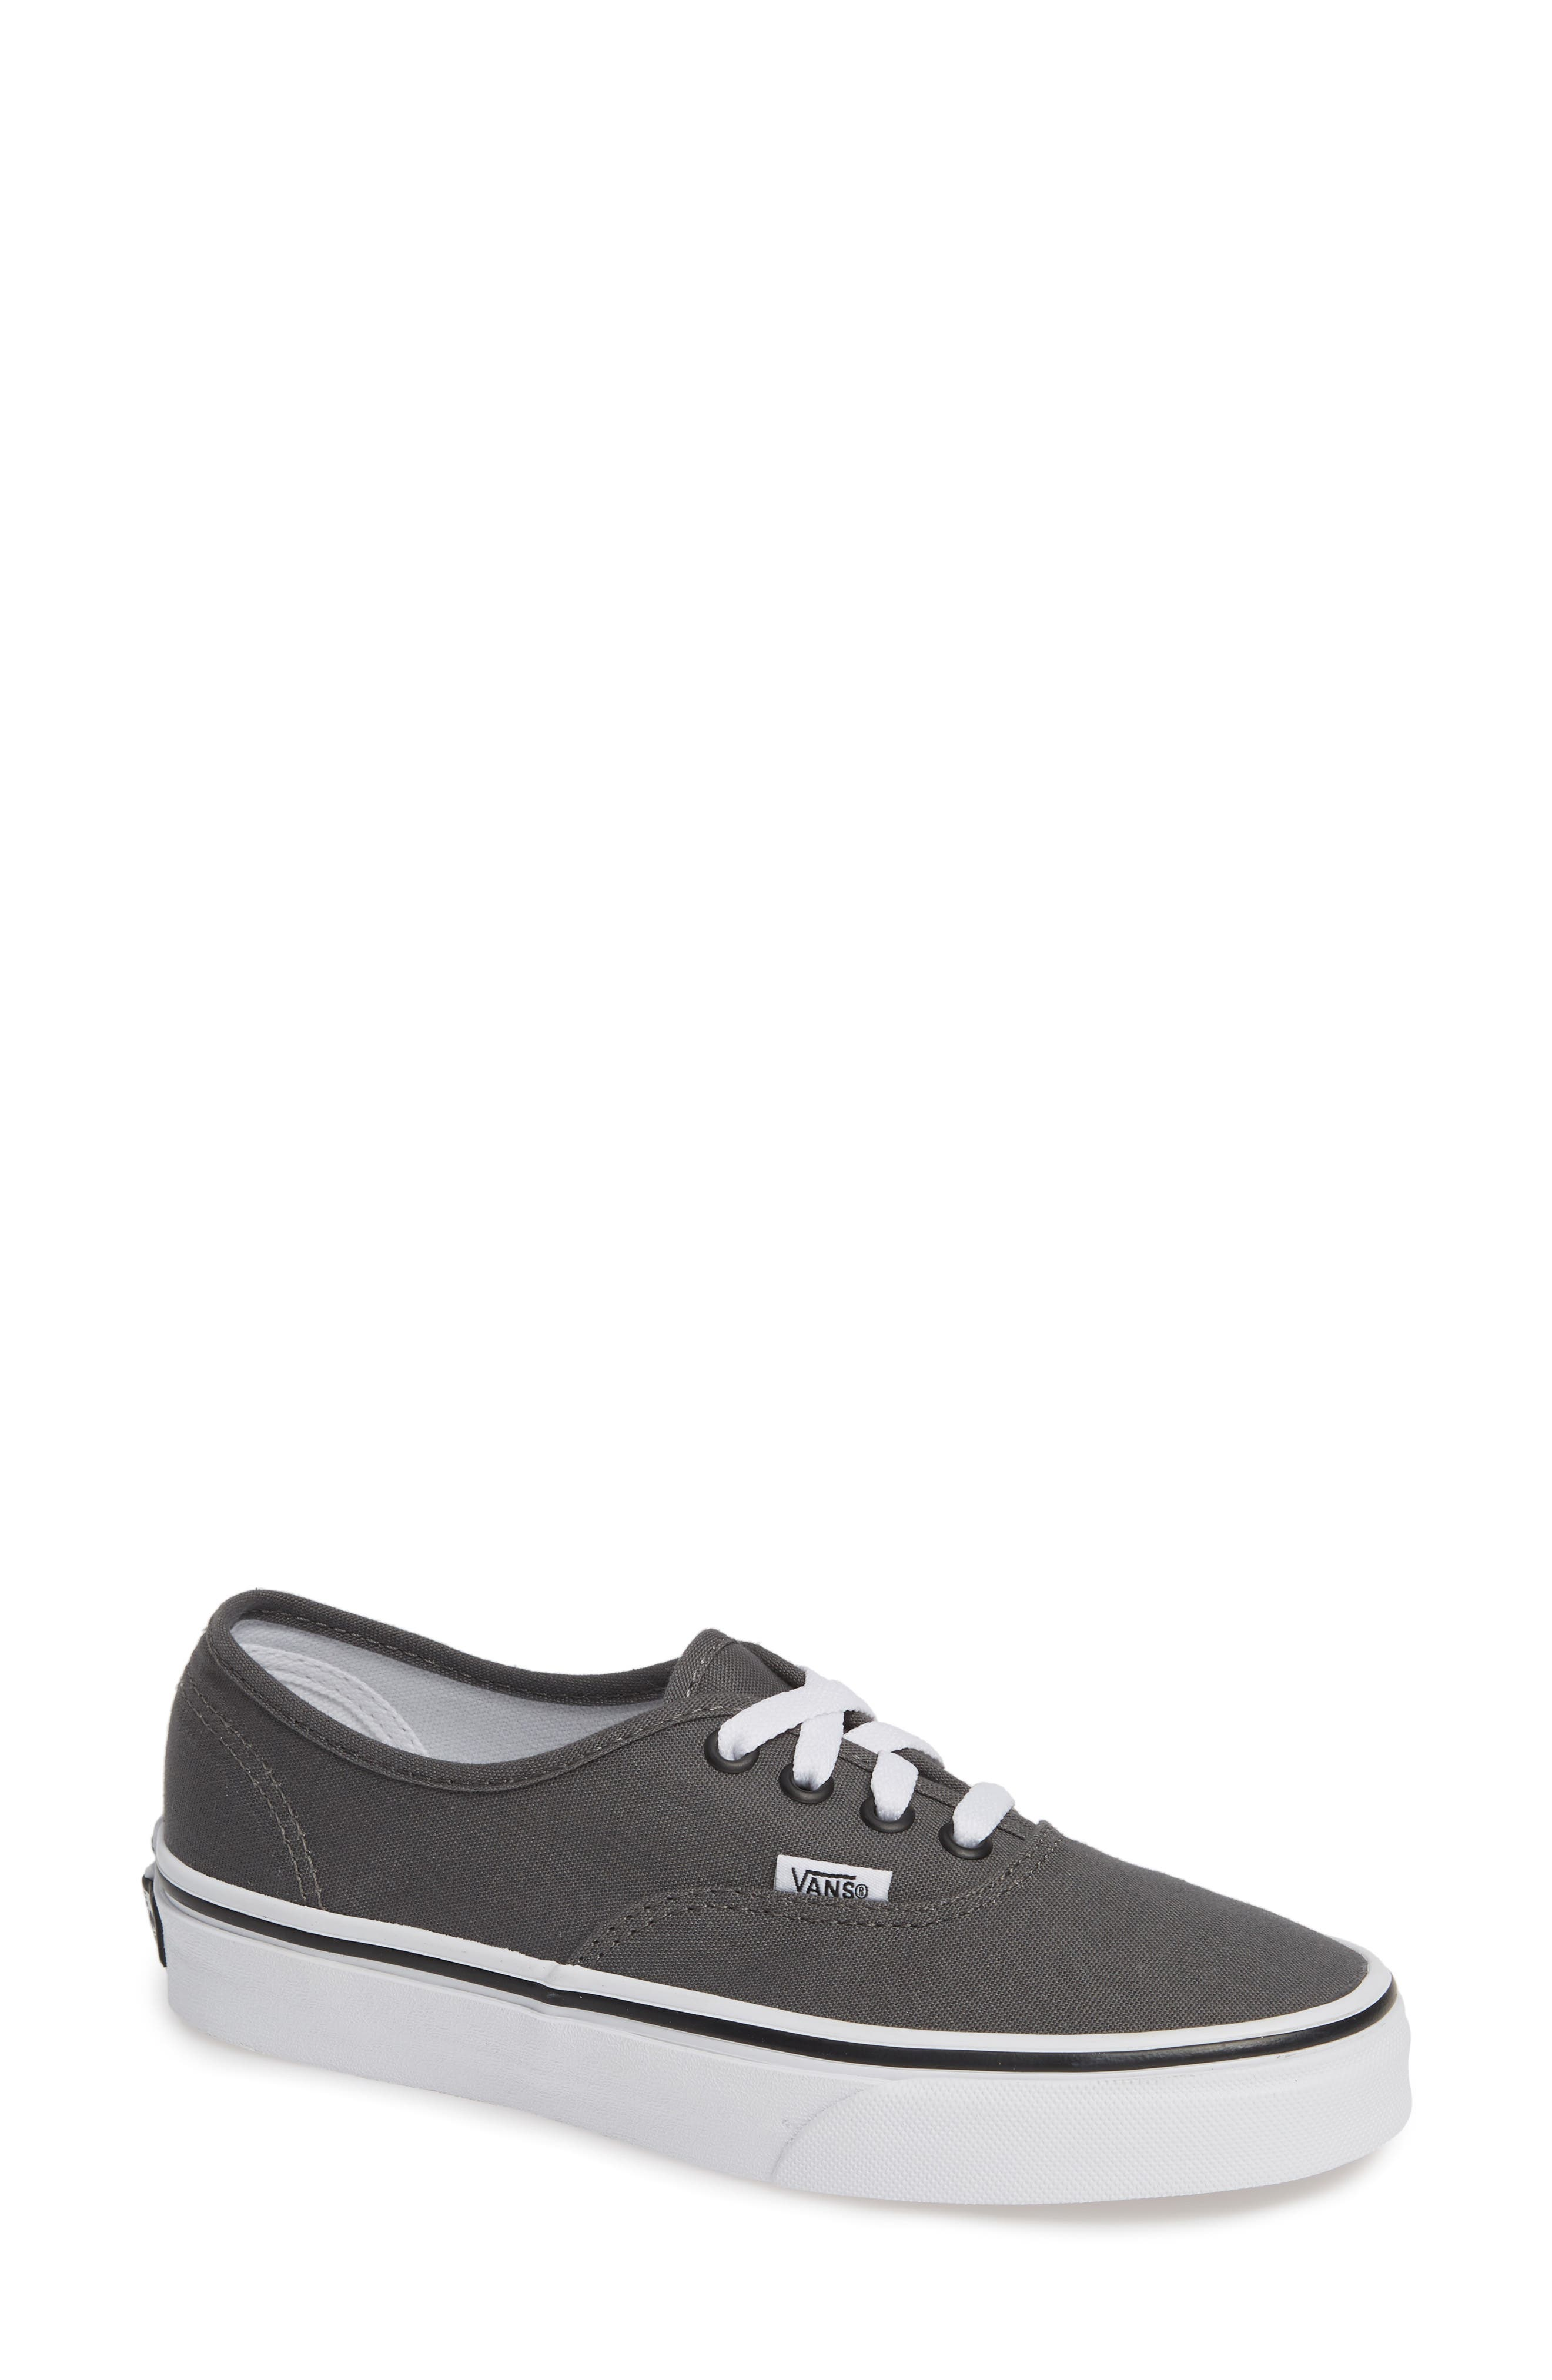 VANS, 'Authentic' Sneaker, Alternate thumbnail 2, color, PEWTER/BLACK